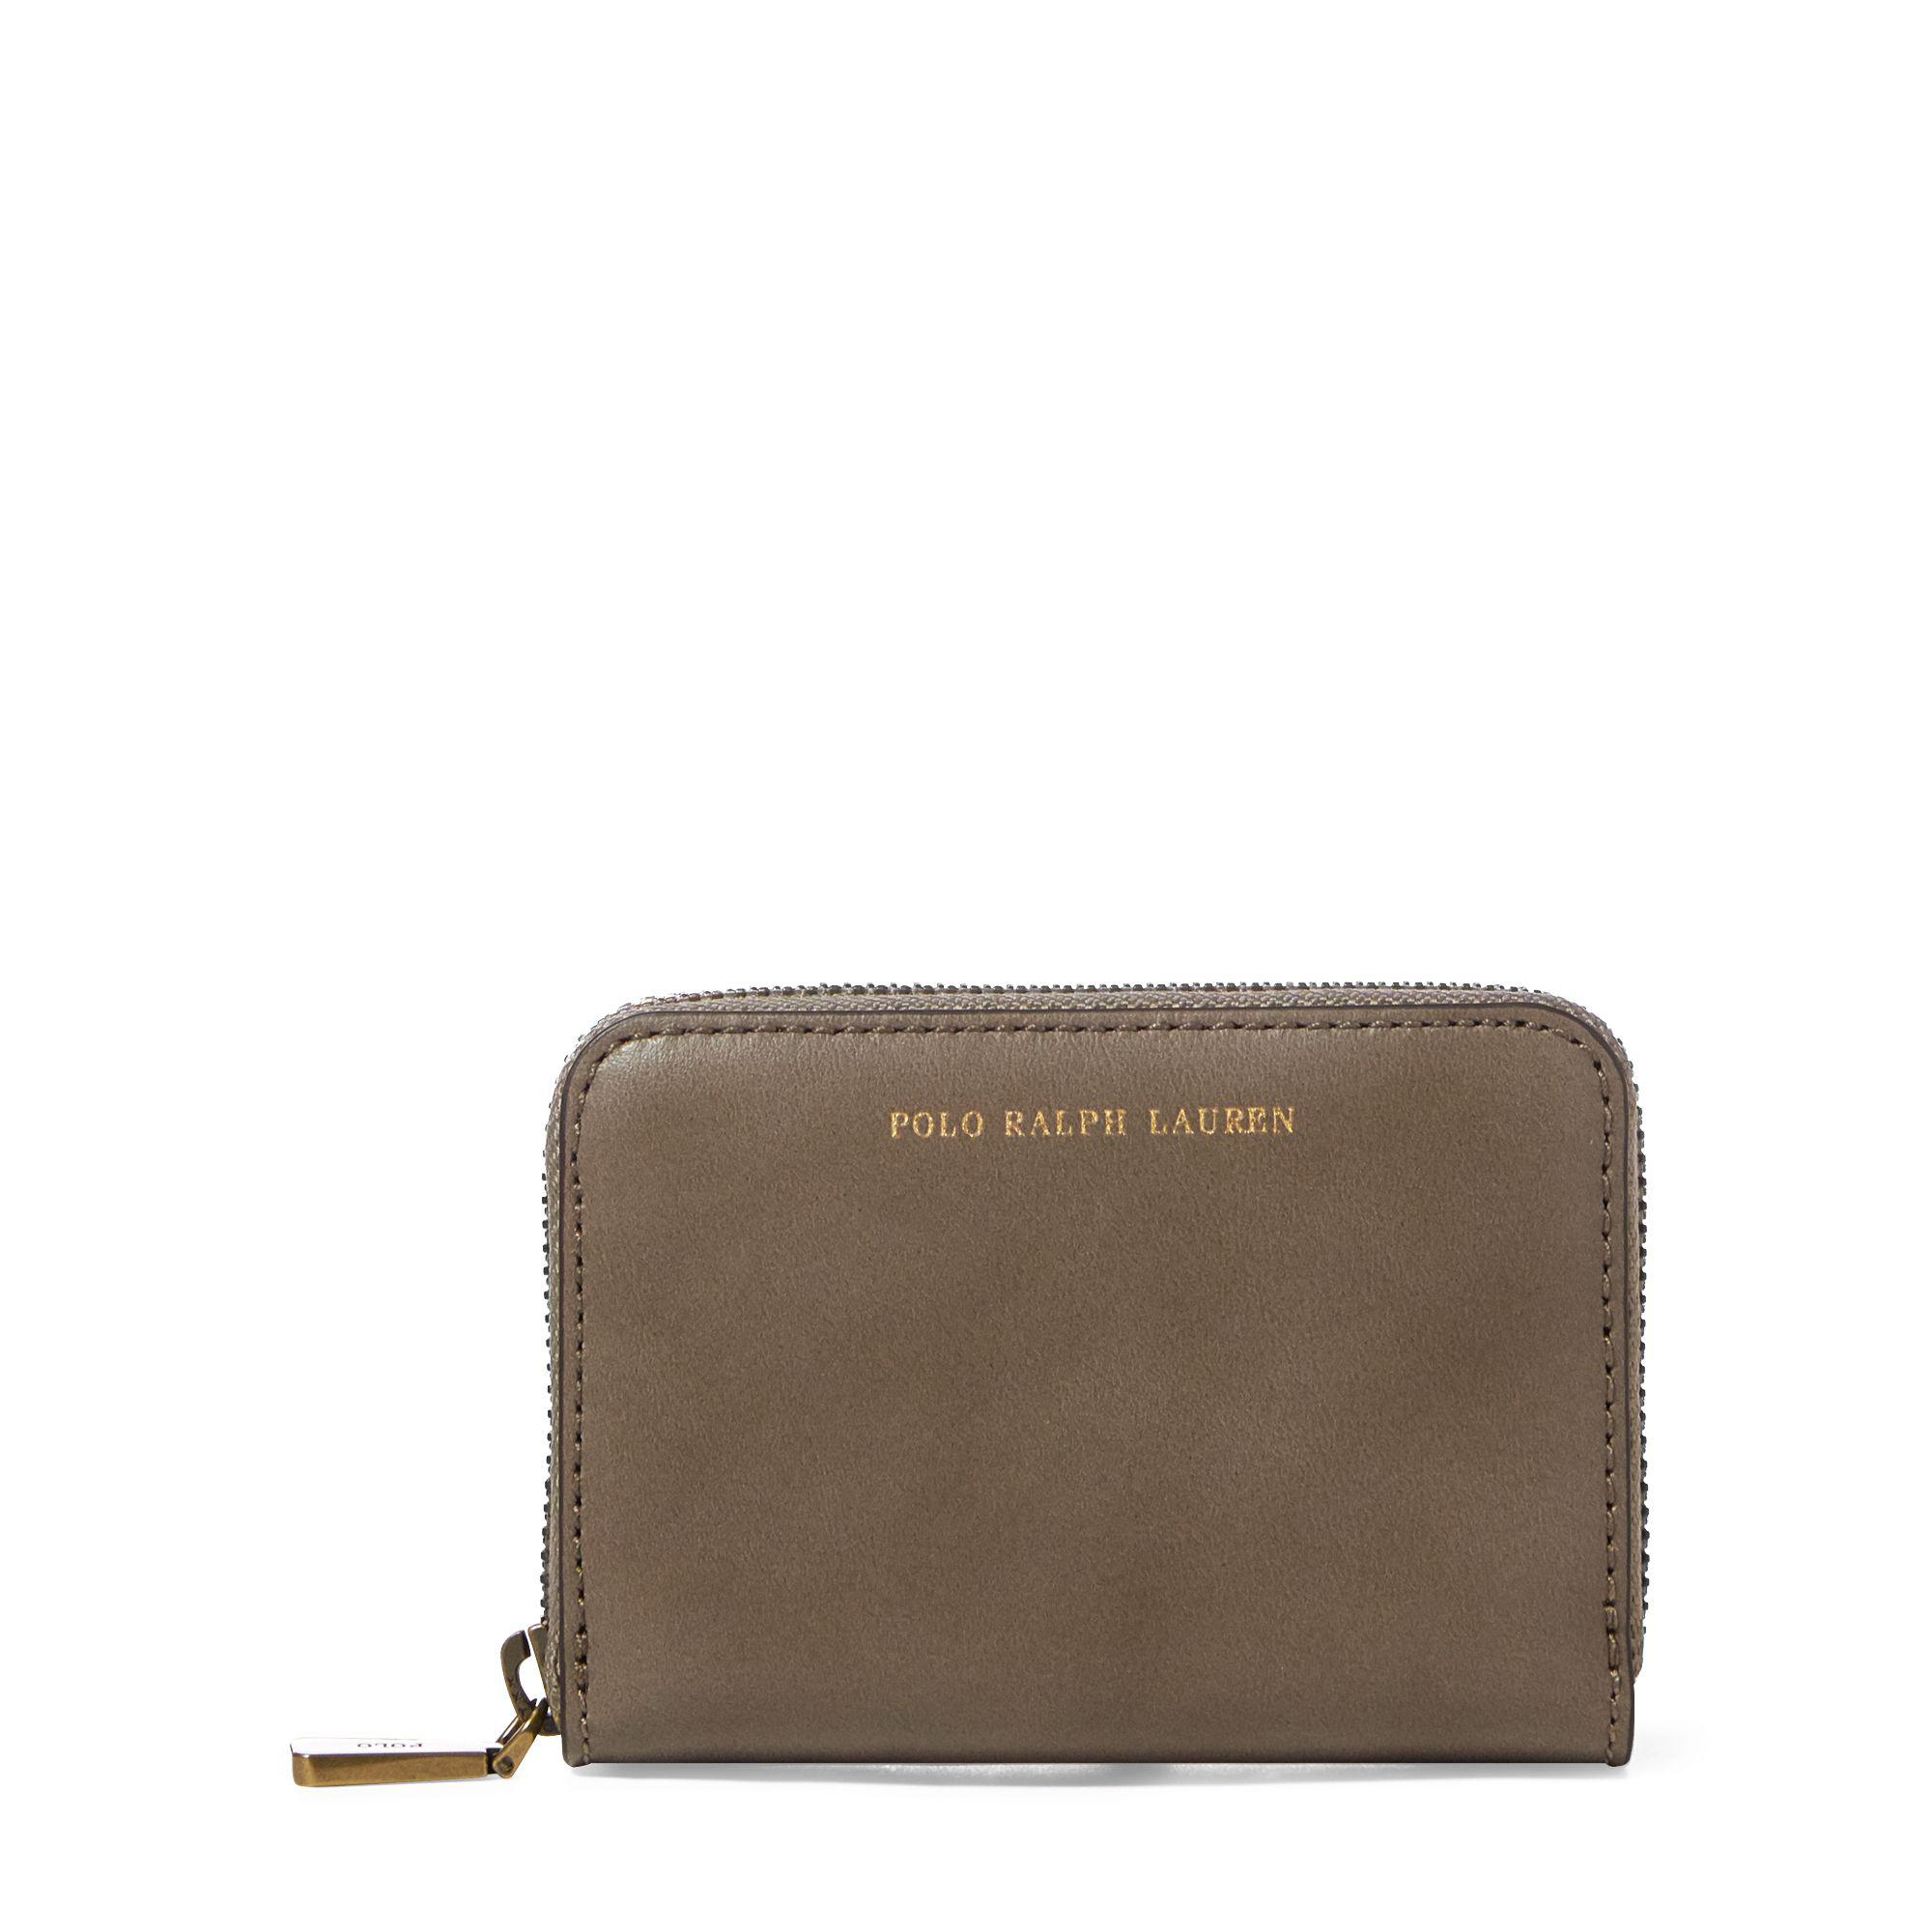 Lyst - Polo Ralph Lauren Leather Small Zip Wallet in Brown 986bcbc95e